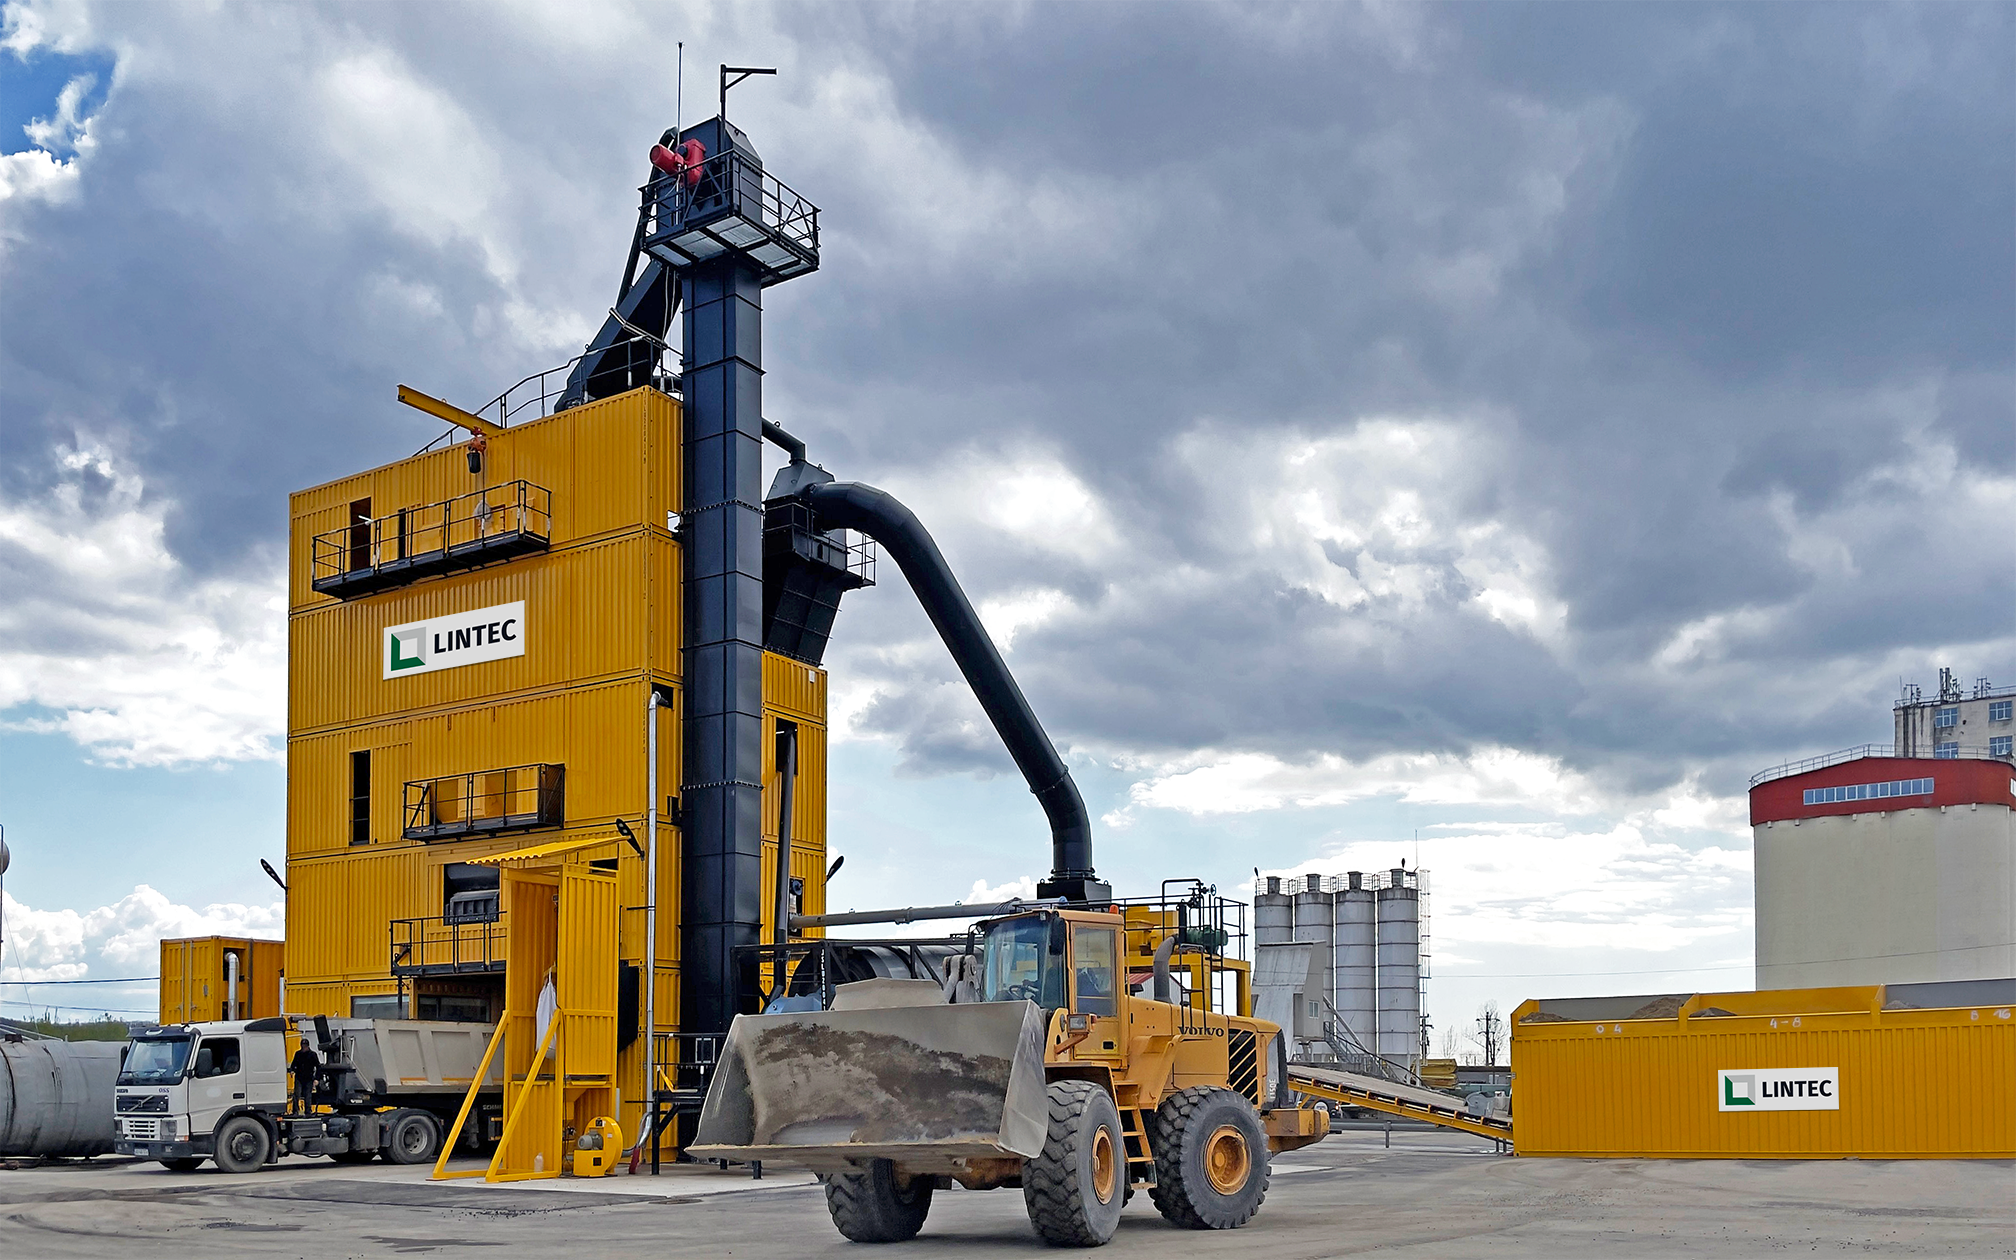 First Lintec CSM 3000 asphalt plant in Romania supports growing demand for roads